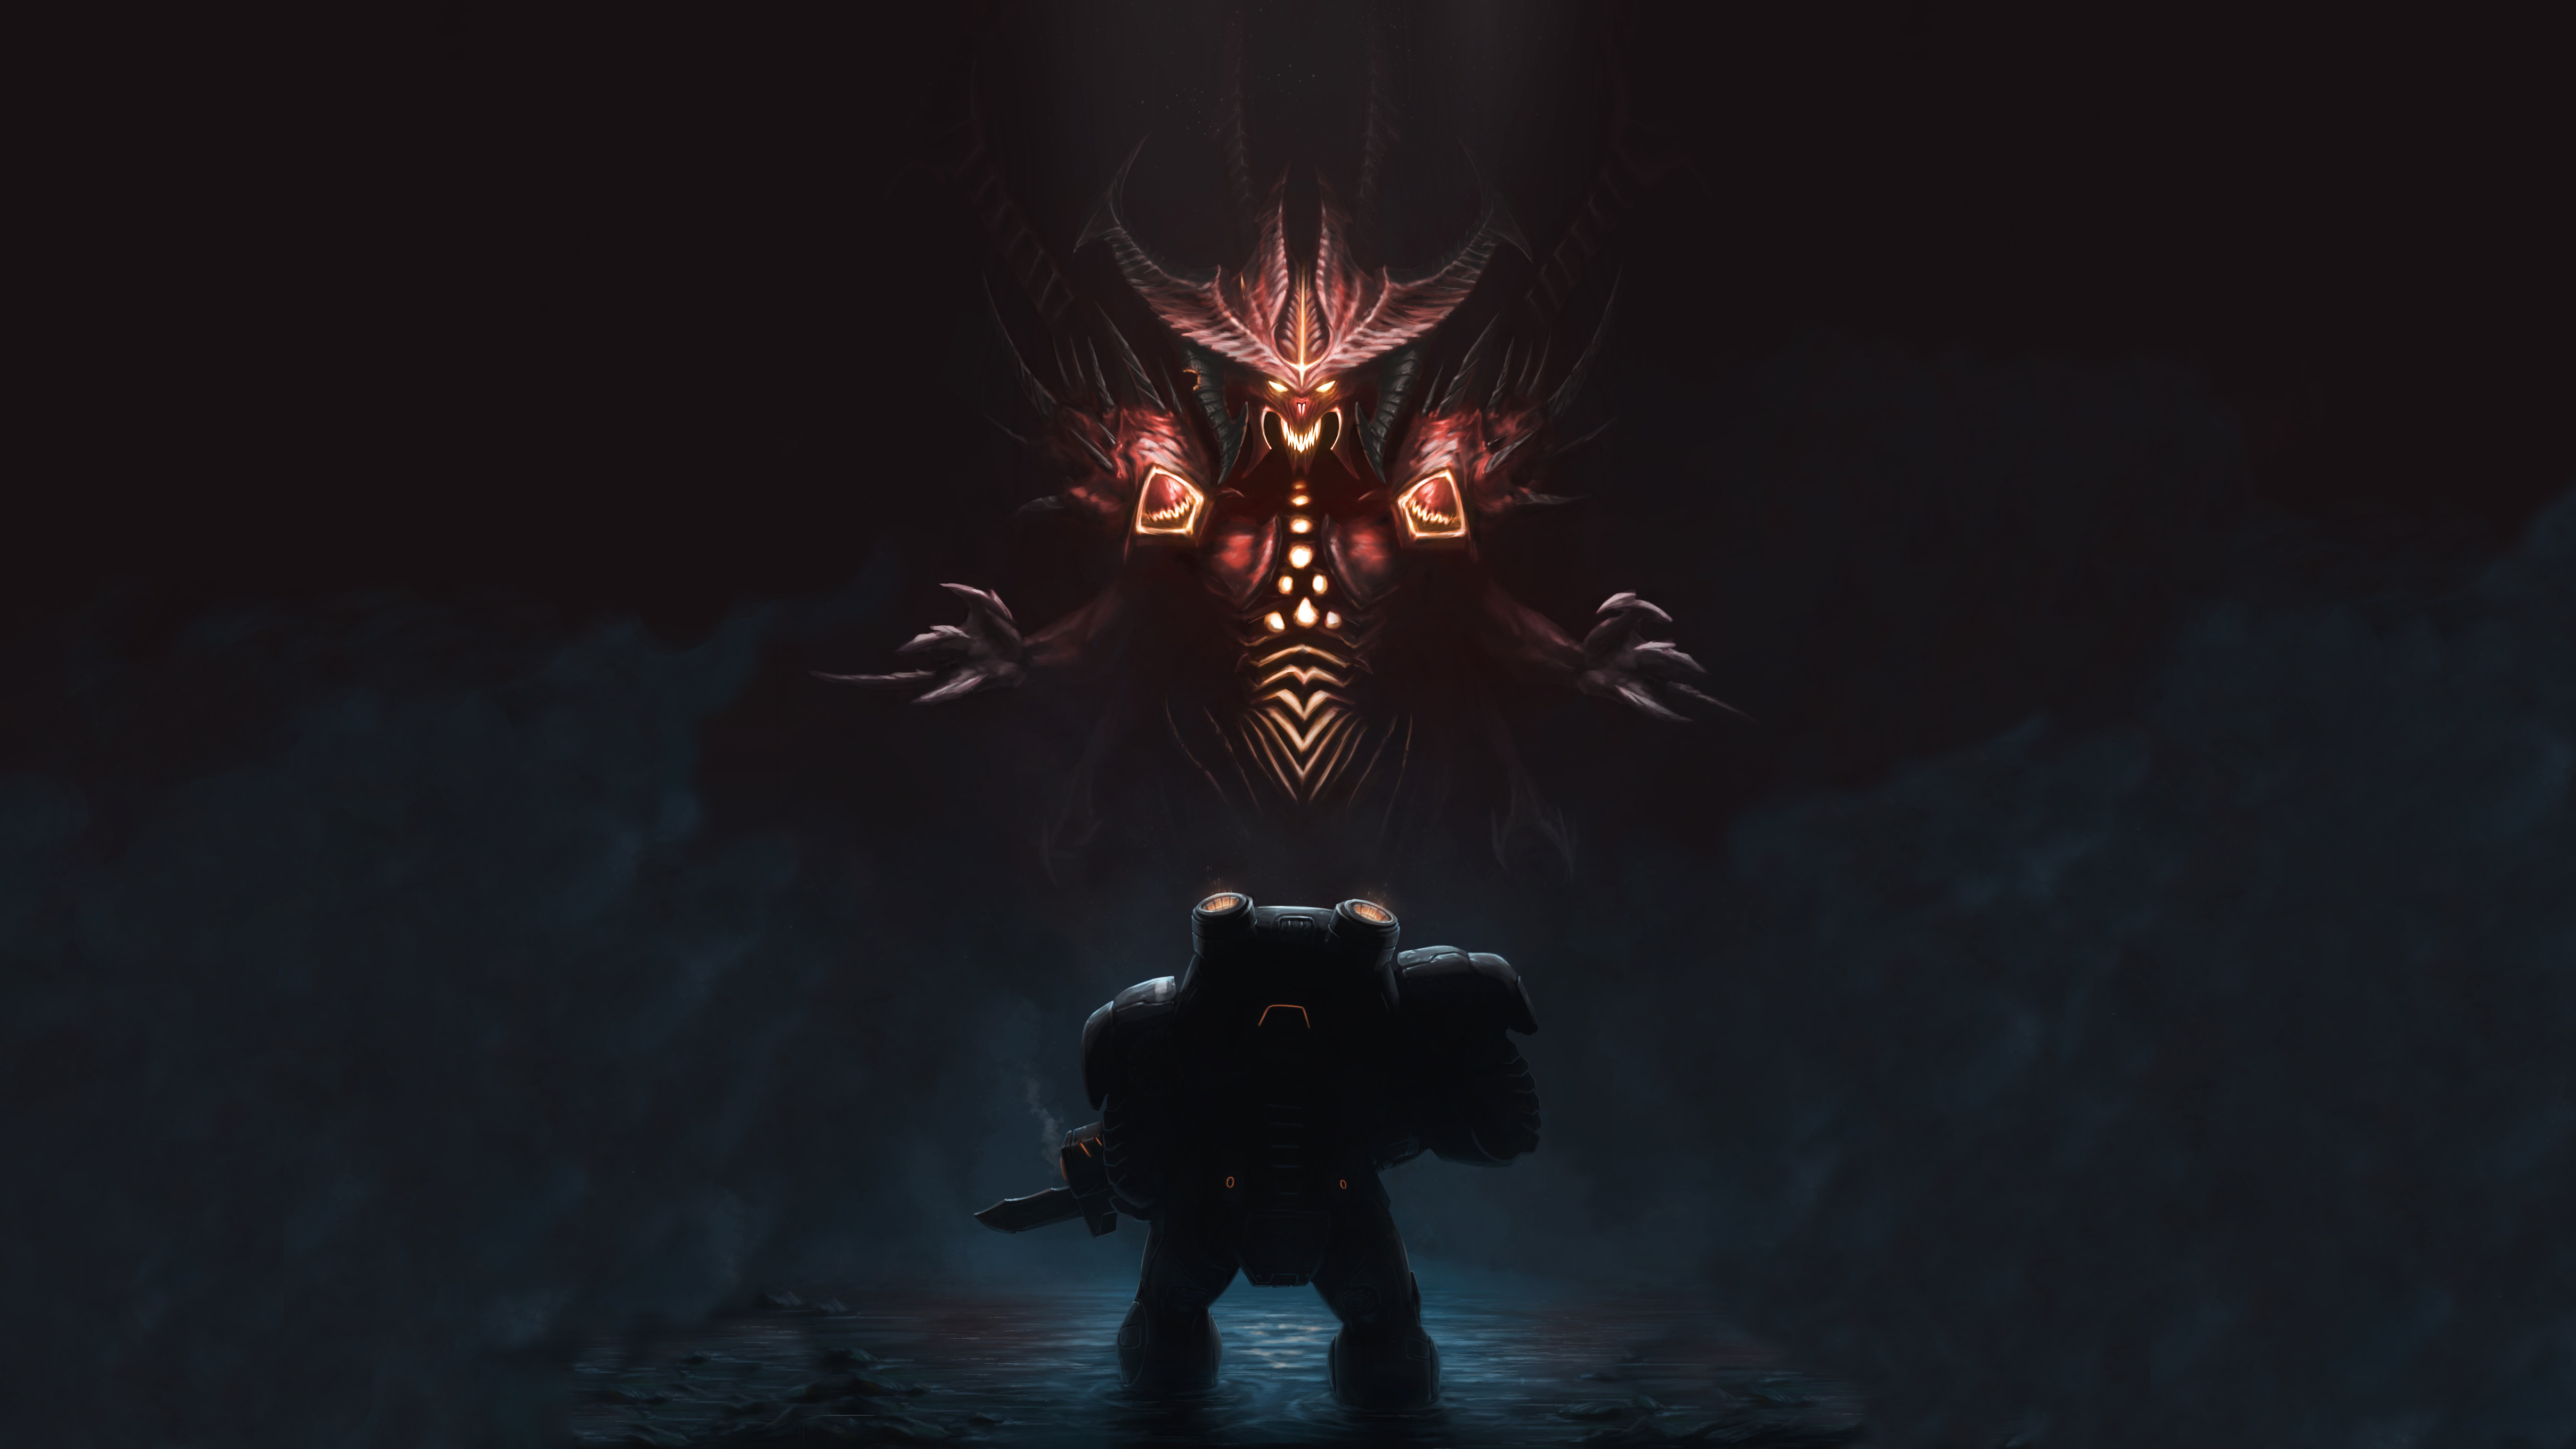 Heroes of the storm wallpaper by moxariapph on deviantart - Heroes of the storm phone wallpaper ...